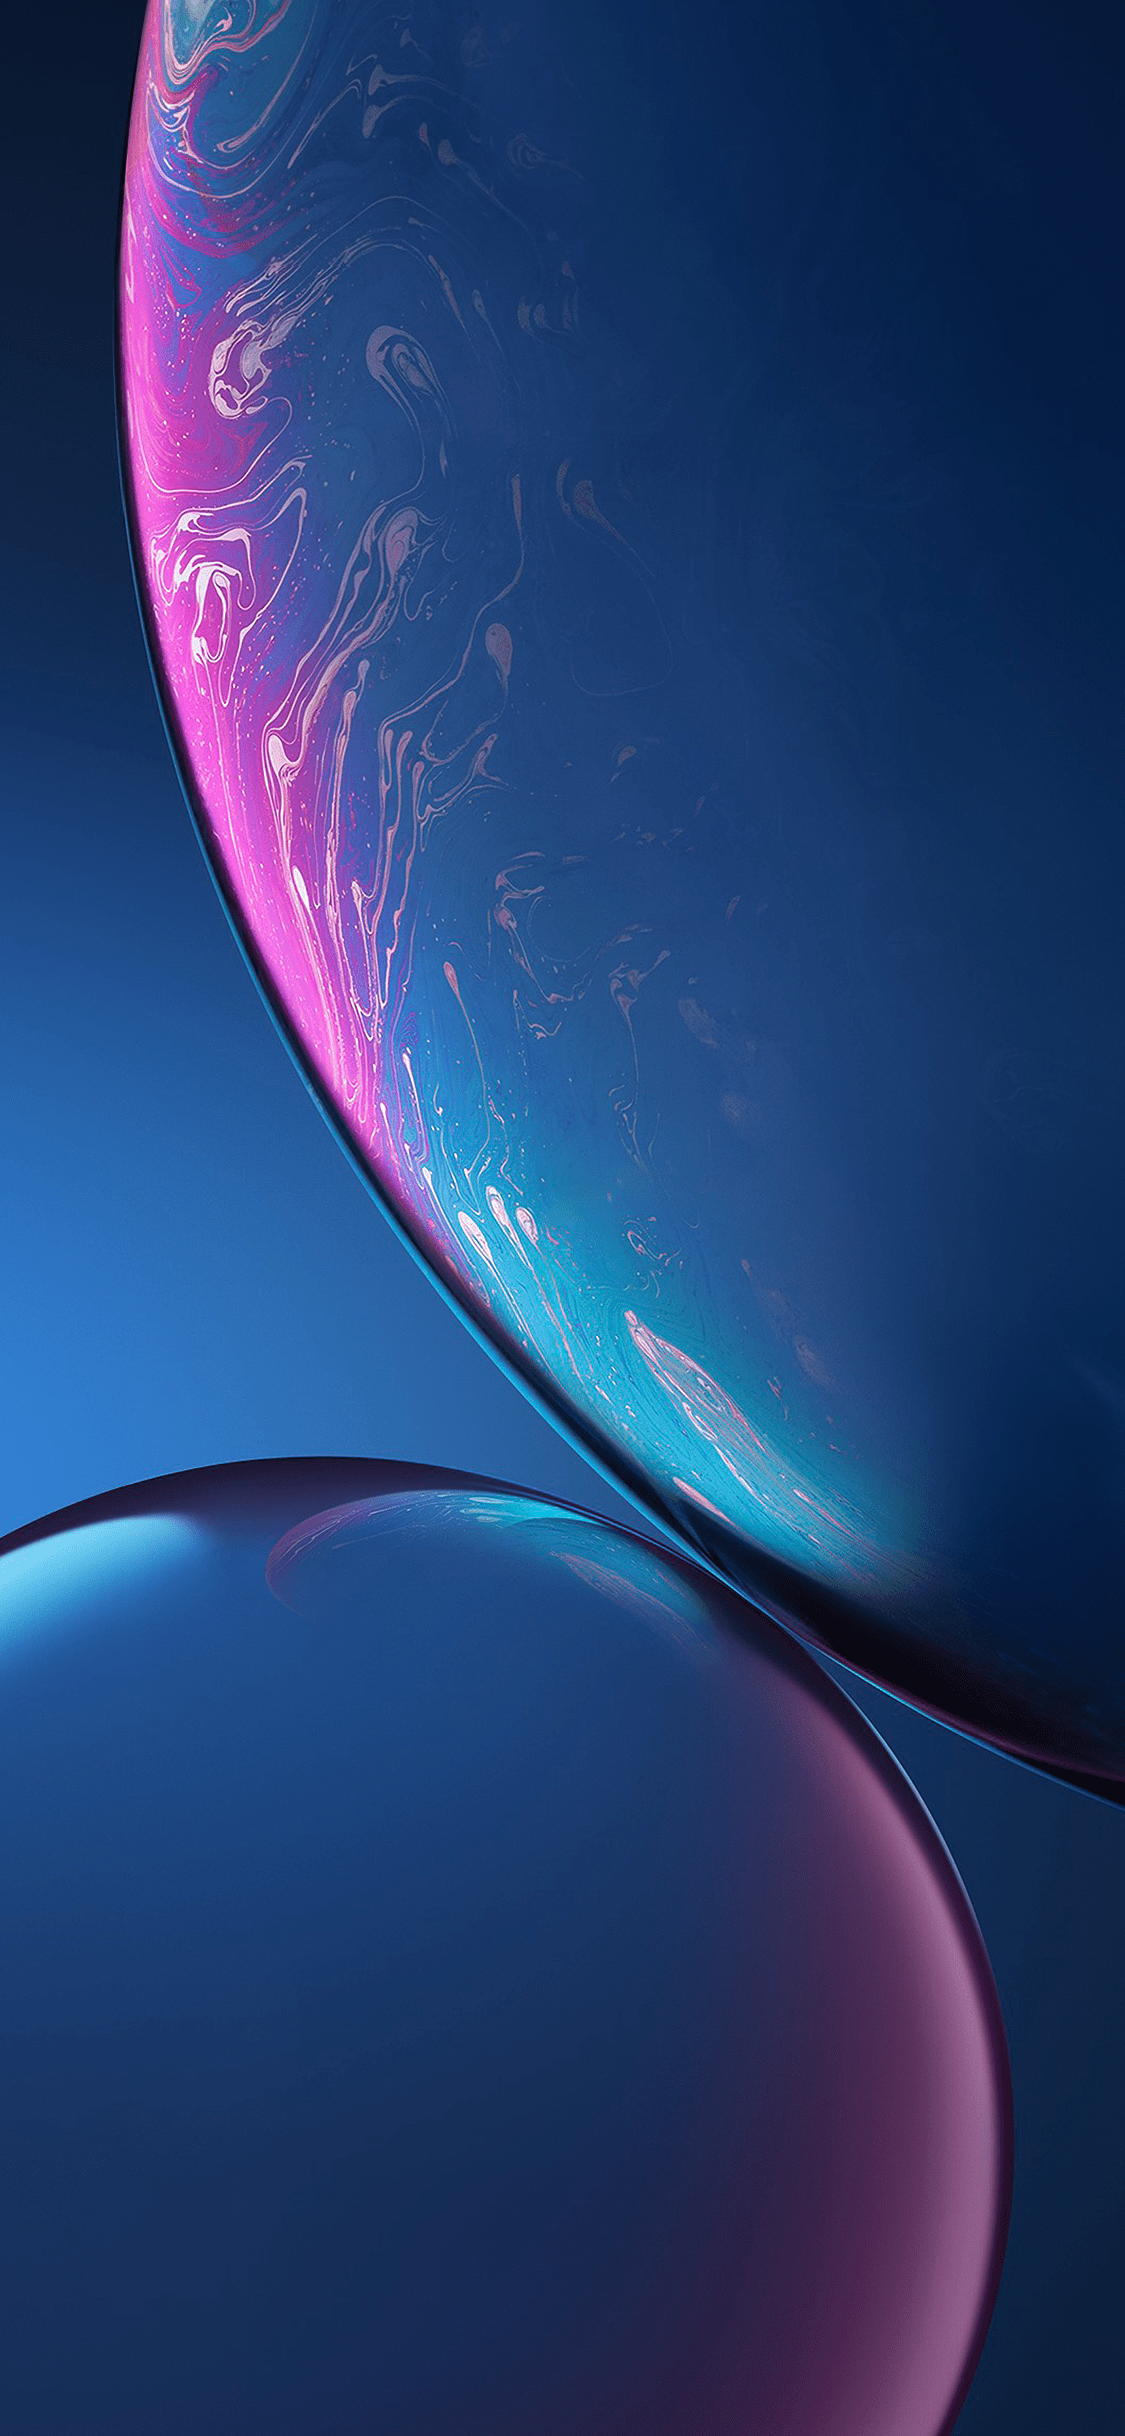 iPhone wallpaper ios 12 wallpapers blue iOS 12 Wallpapers